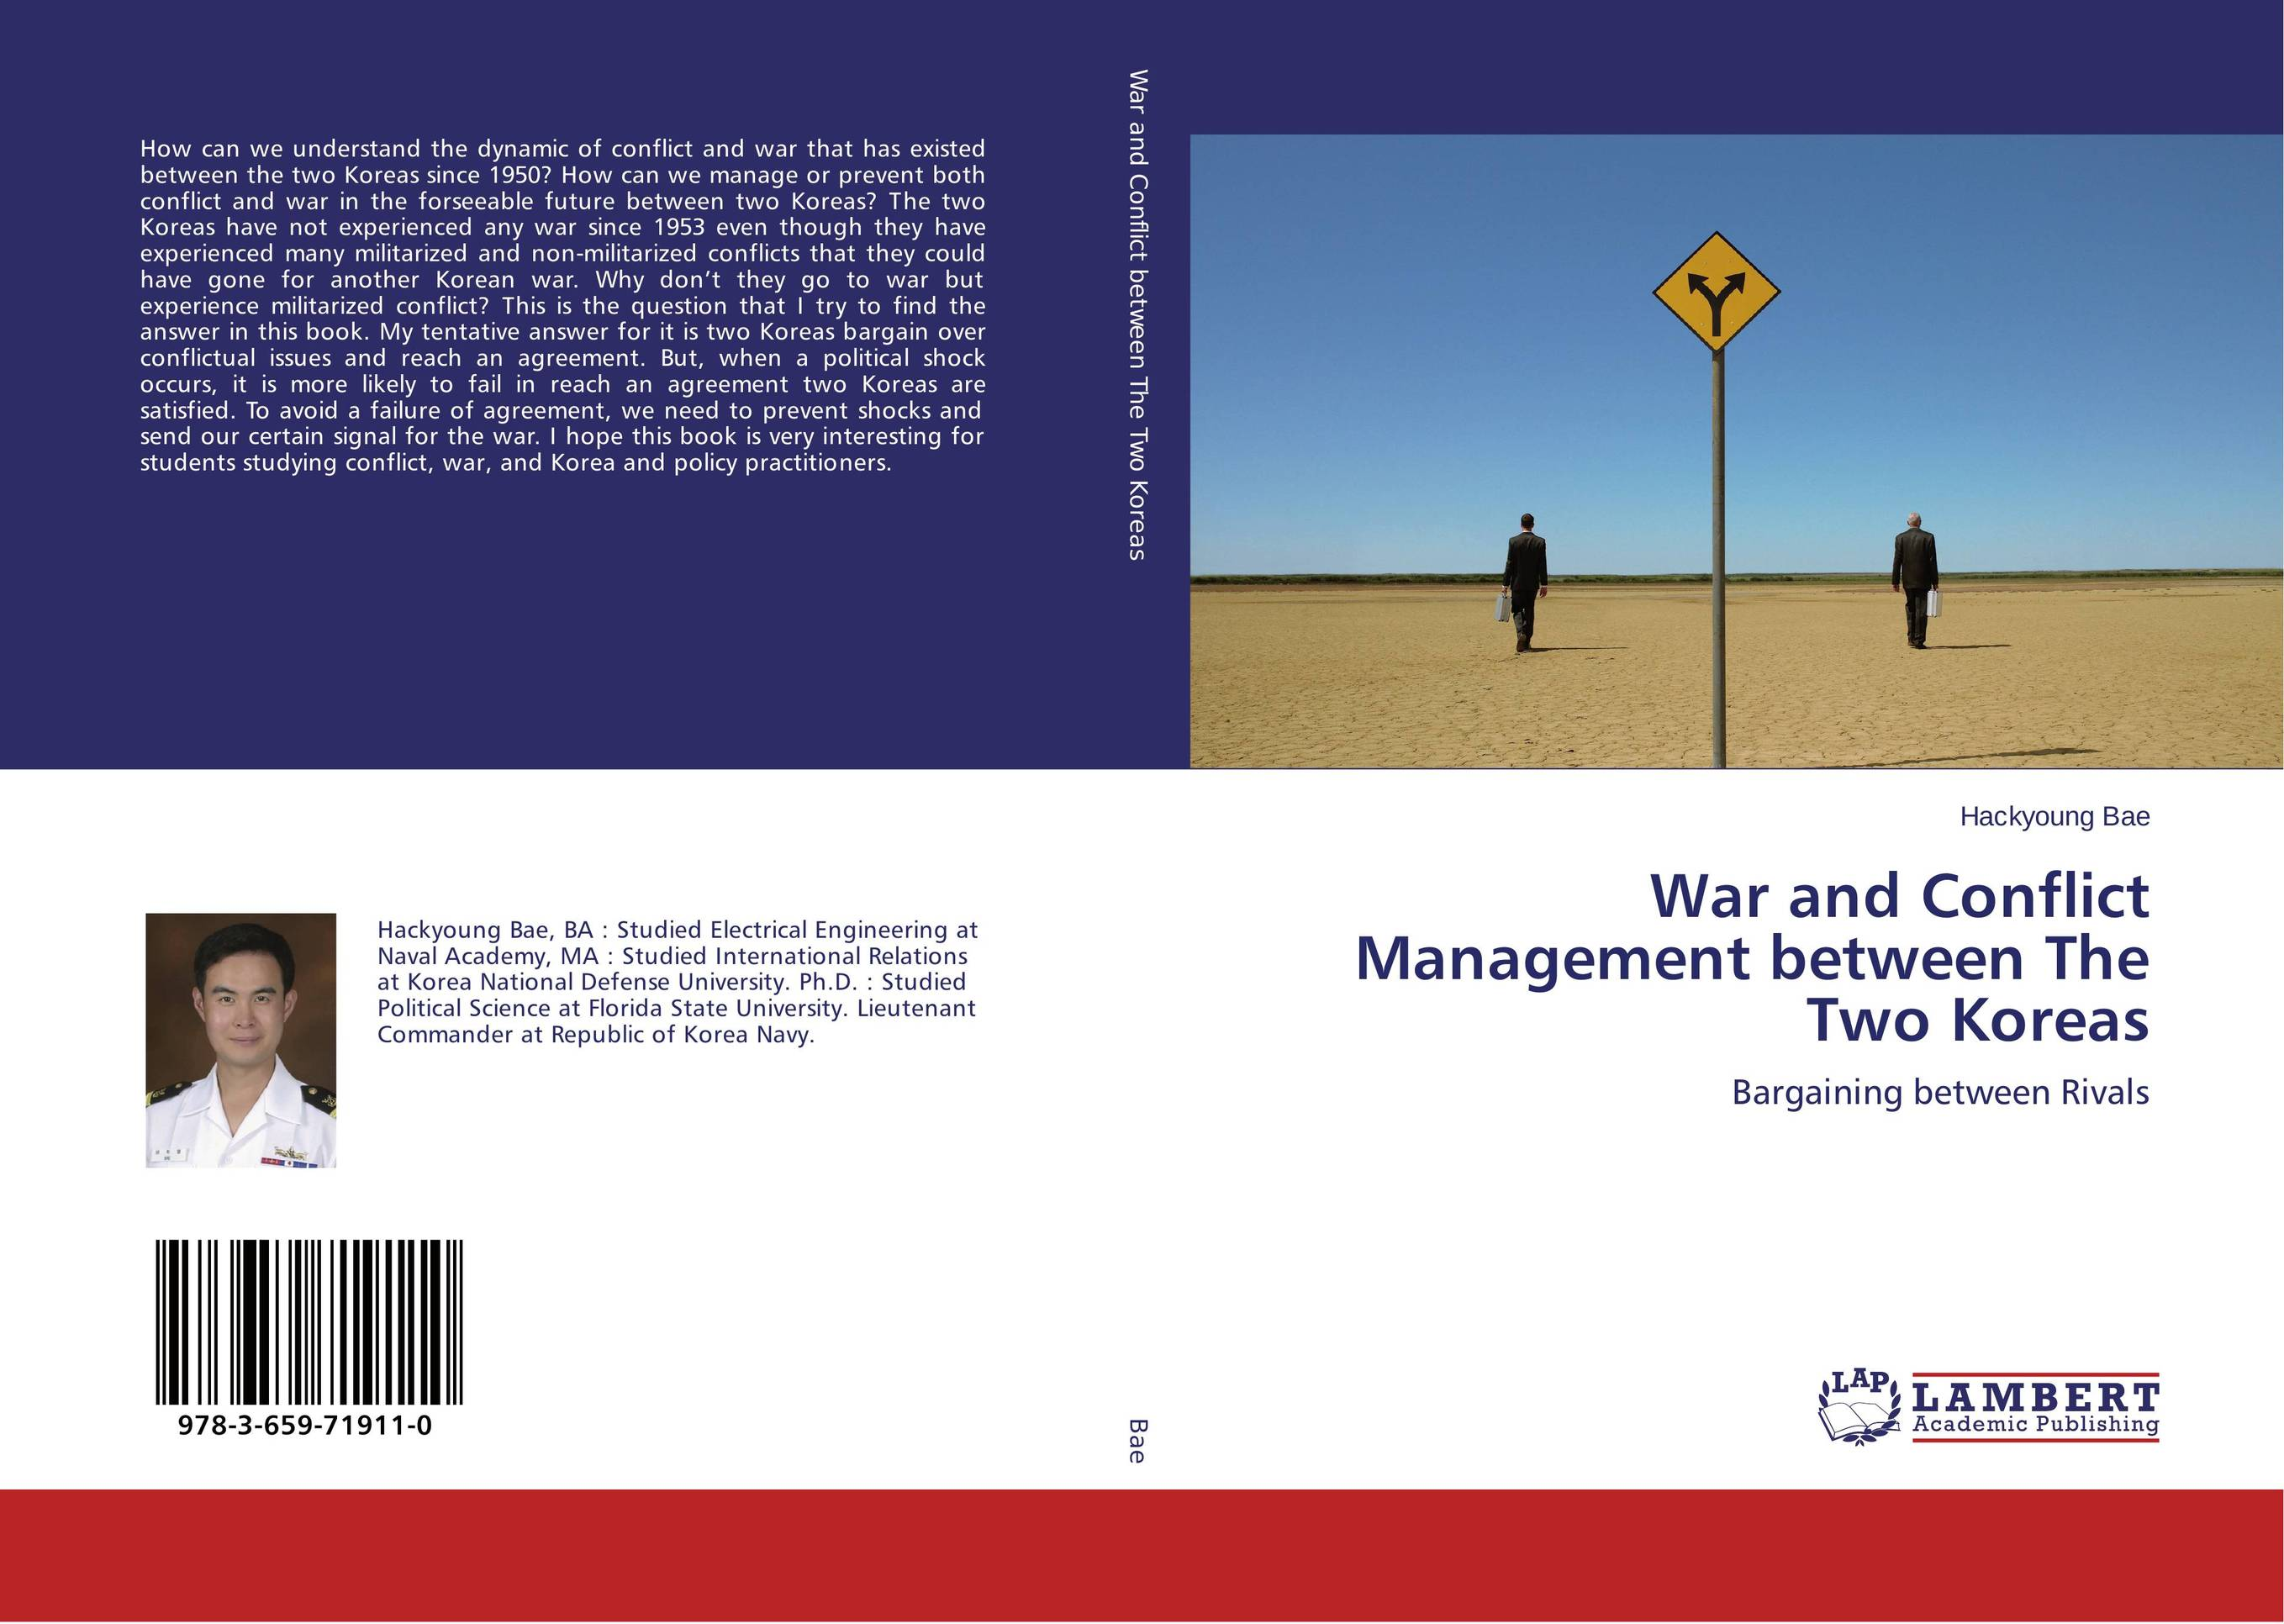 War and Conflict Management between The Two Koreas